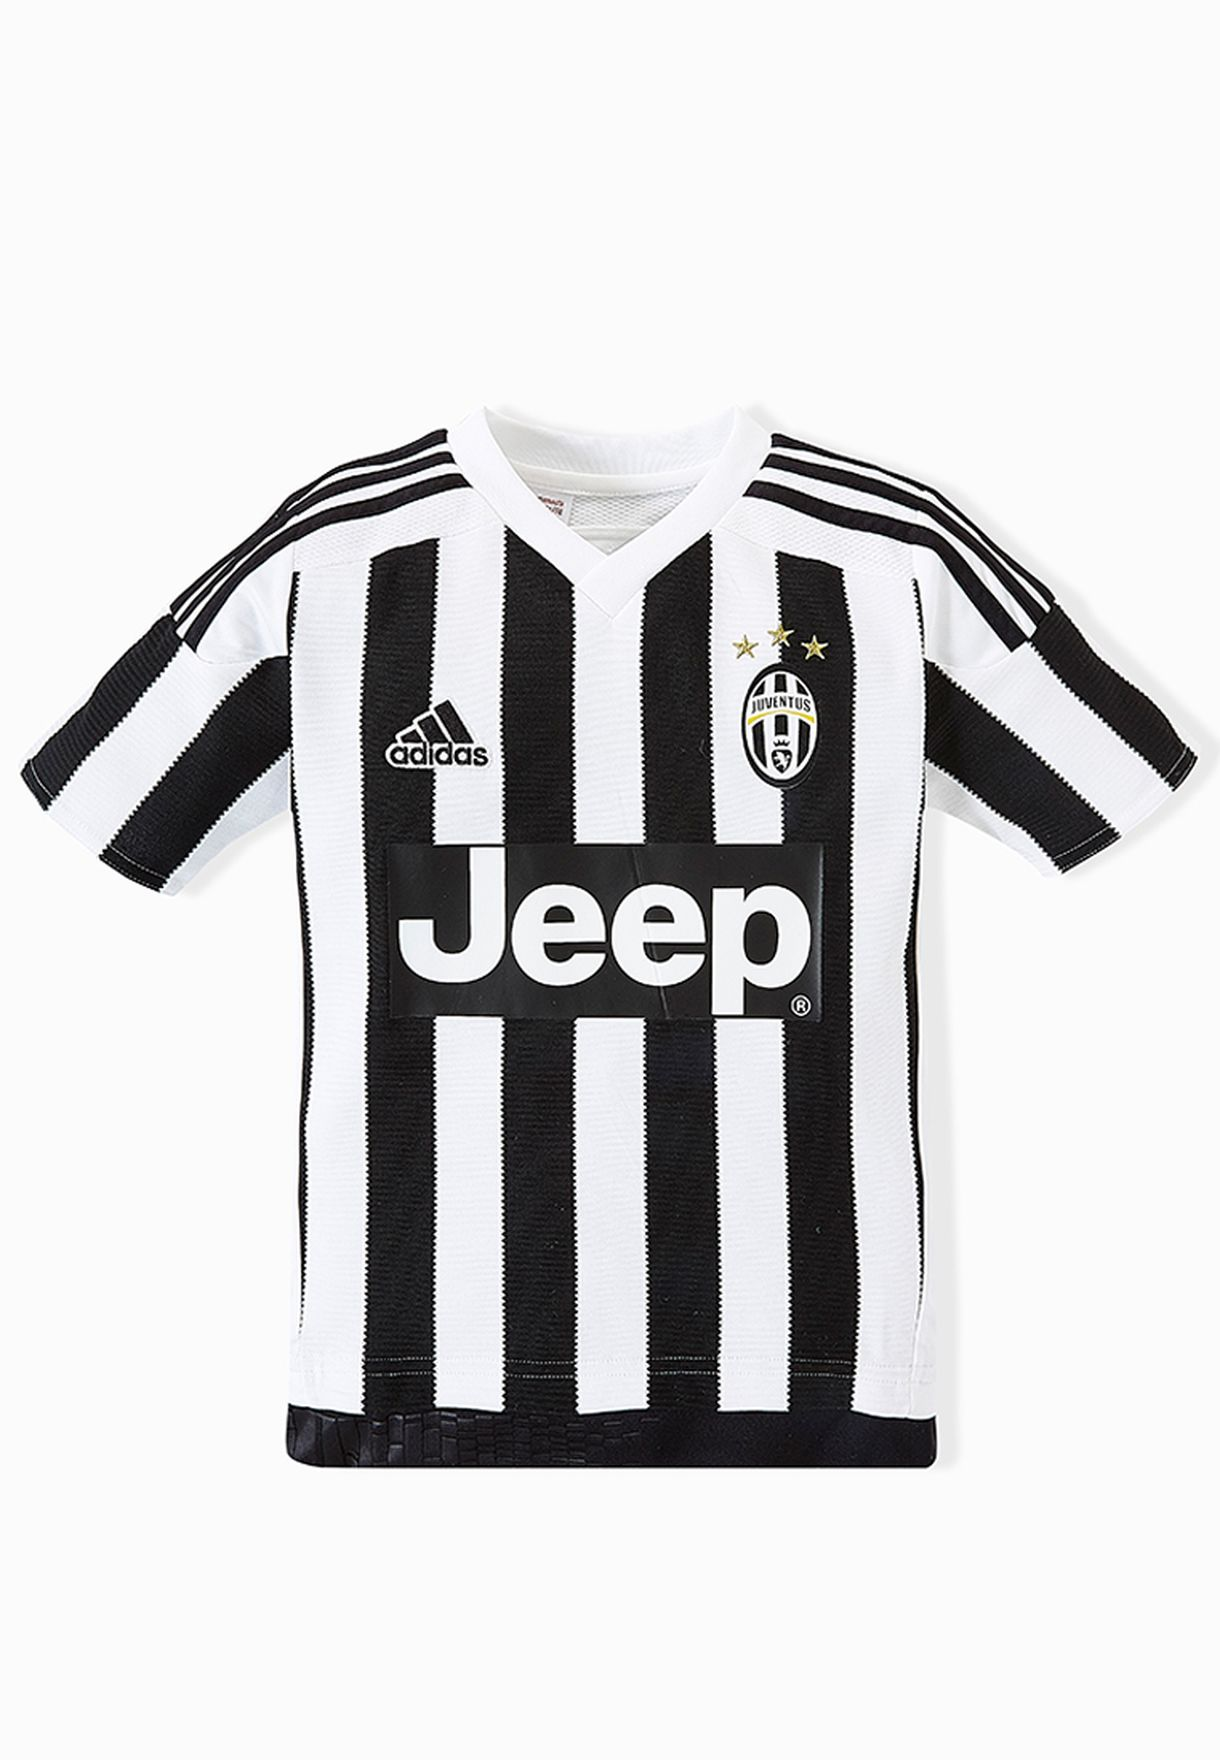 078dae740 Shop adidas monochrome Youth JUVE Home Jersey S12867 for Kids in UAE -  AD476AT29CLA